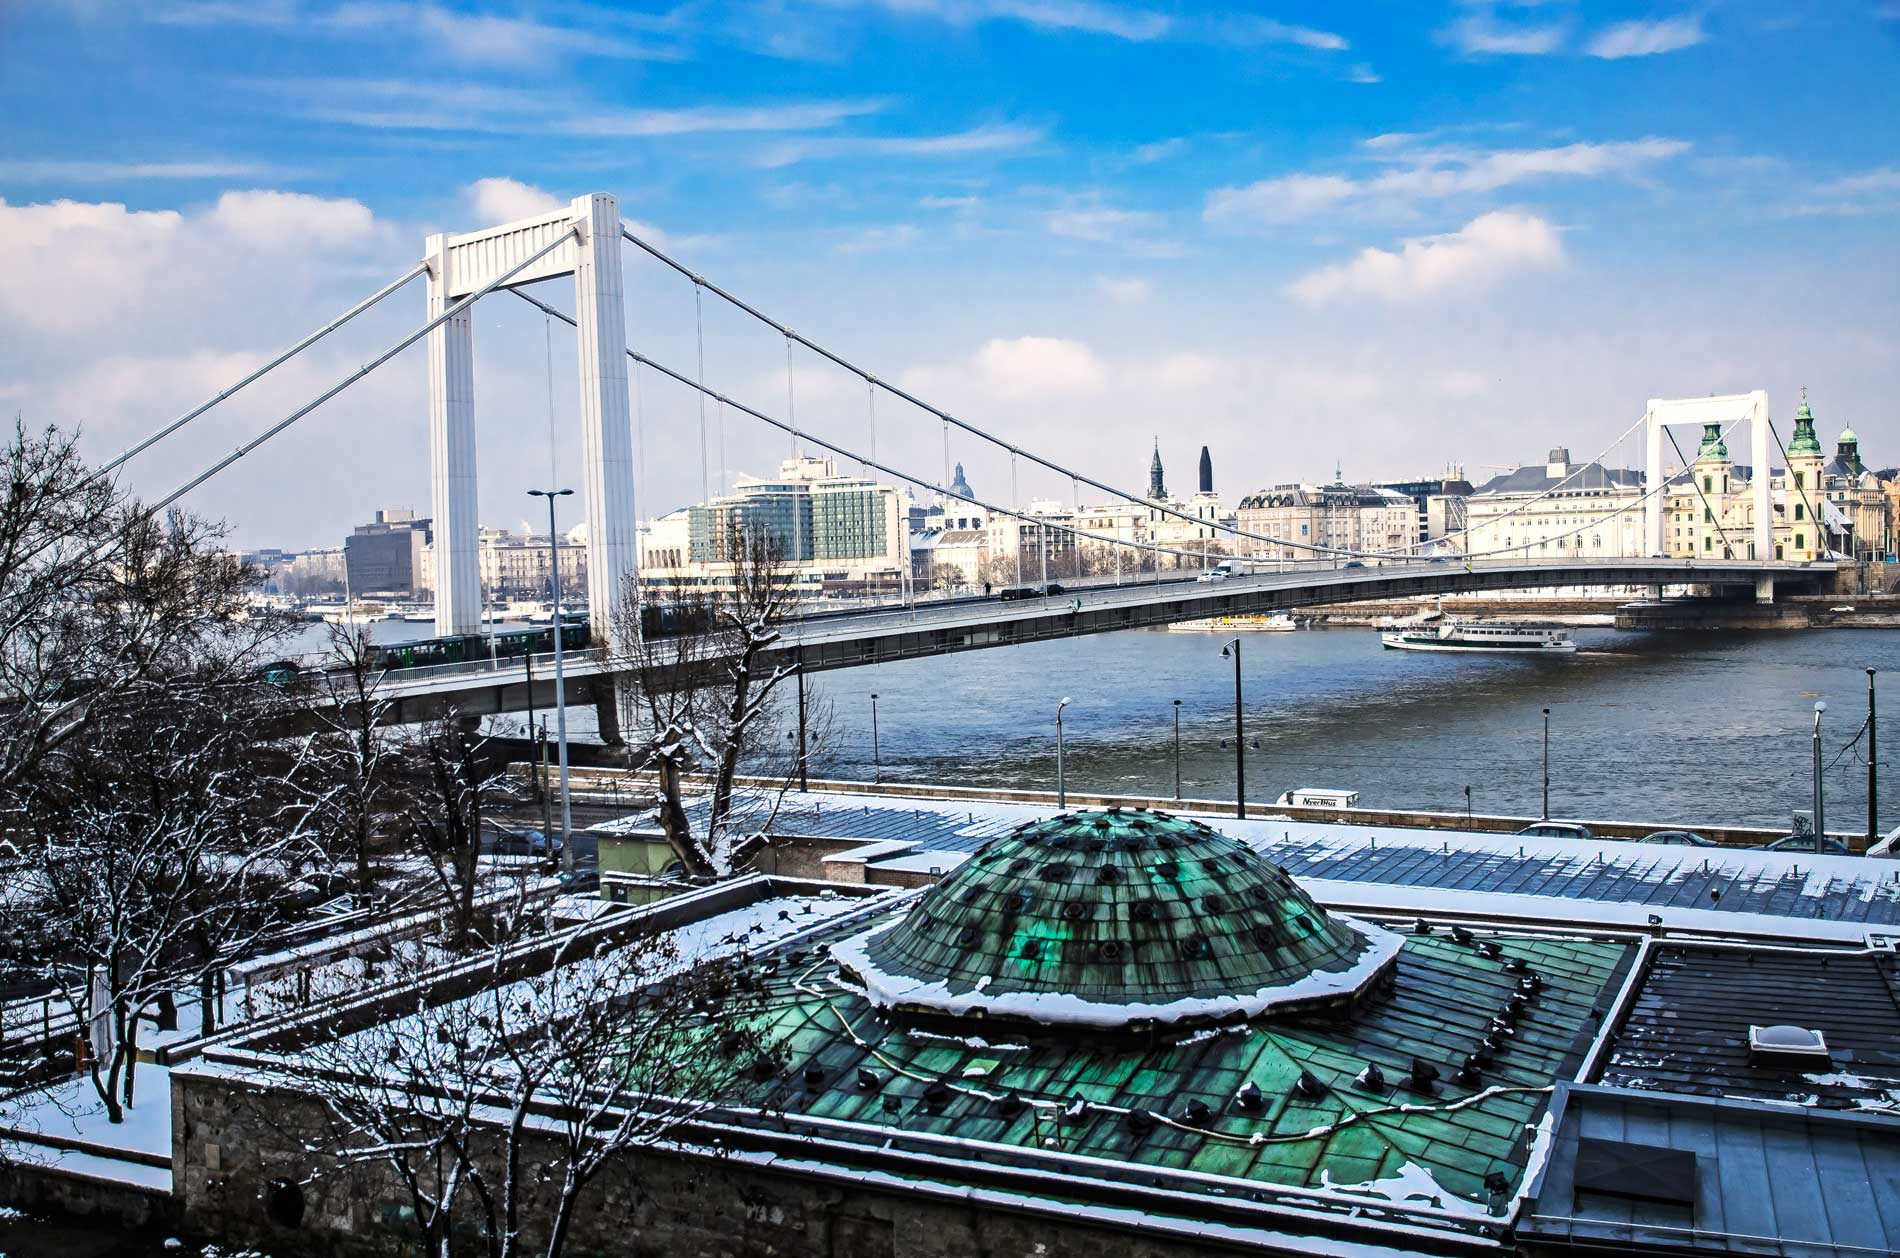 budapest_atthary_photography_danube_11